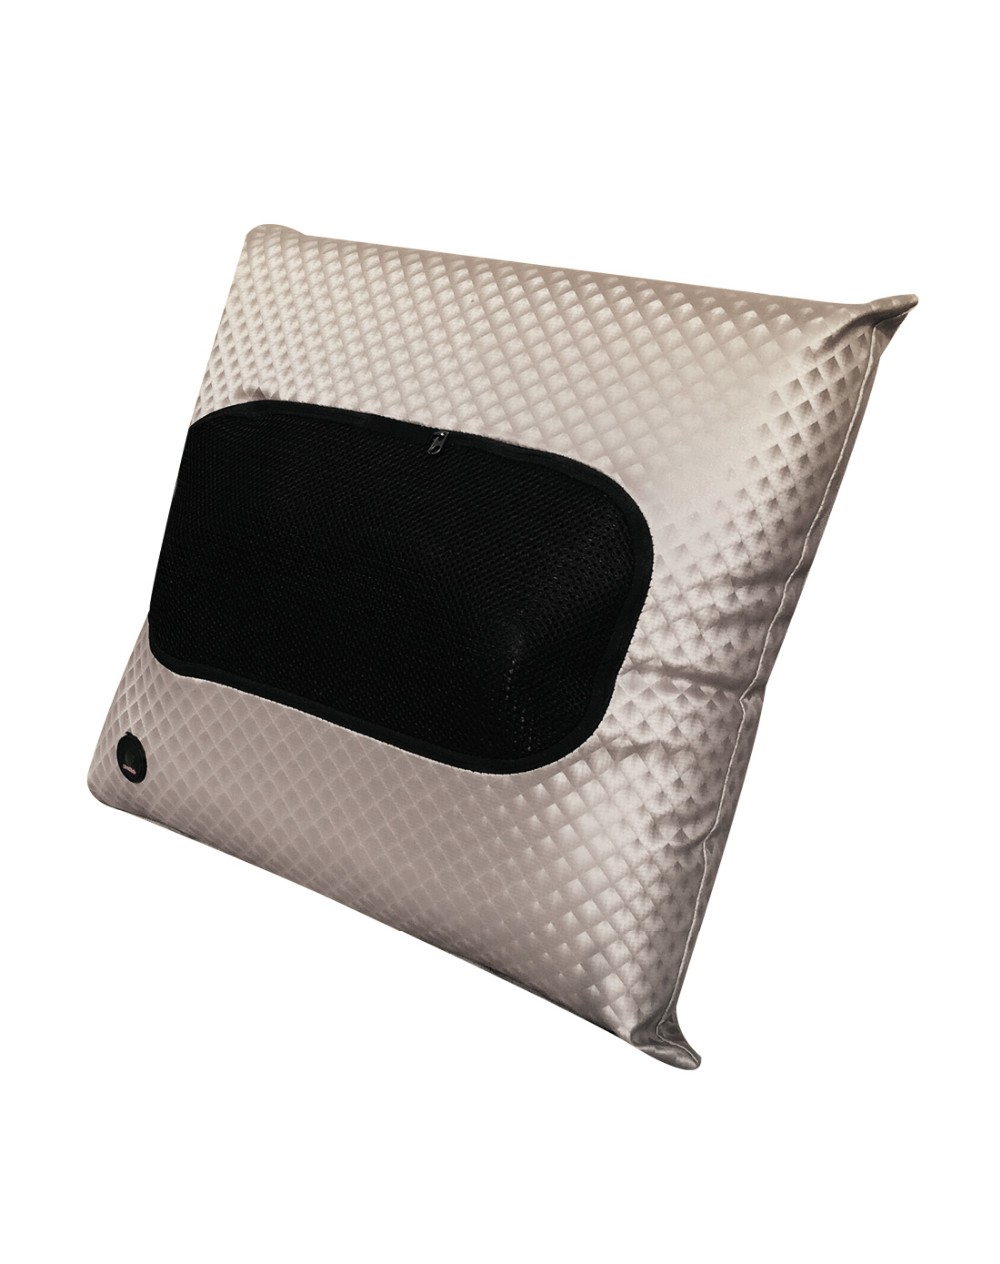 price of Shiatsu massage pillow with heating